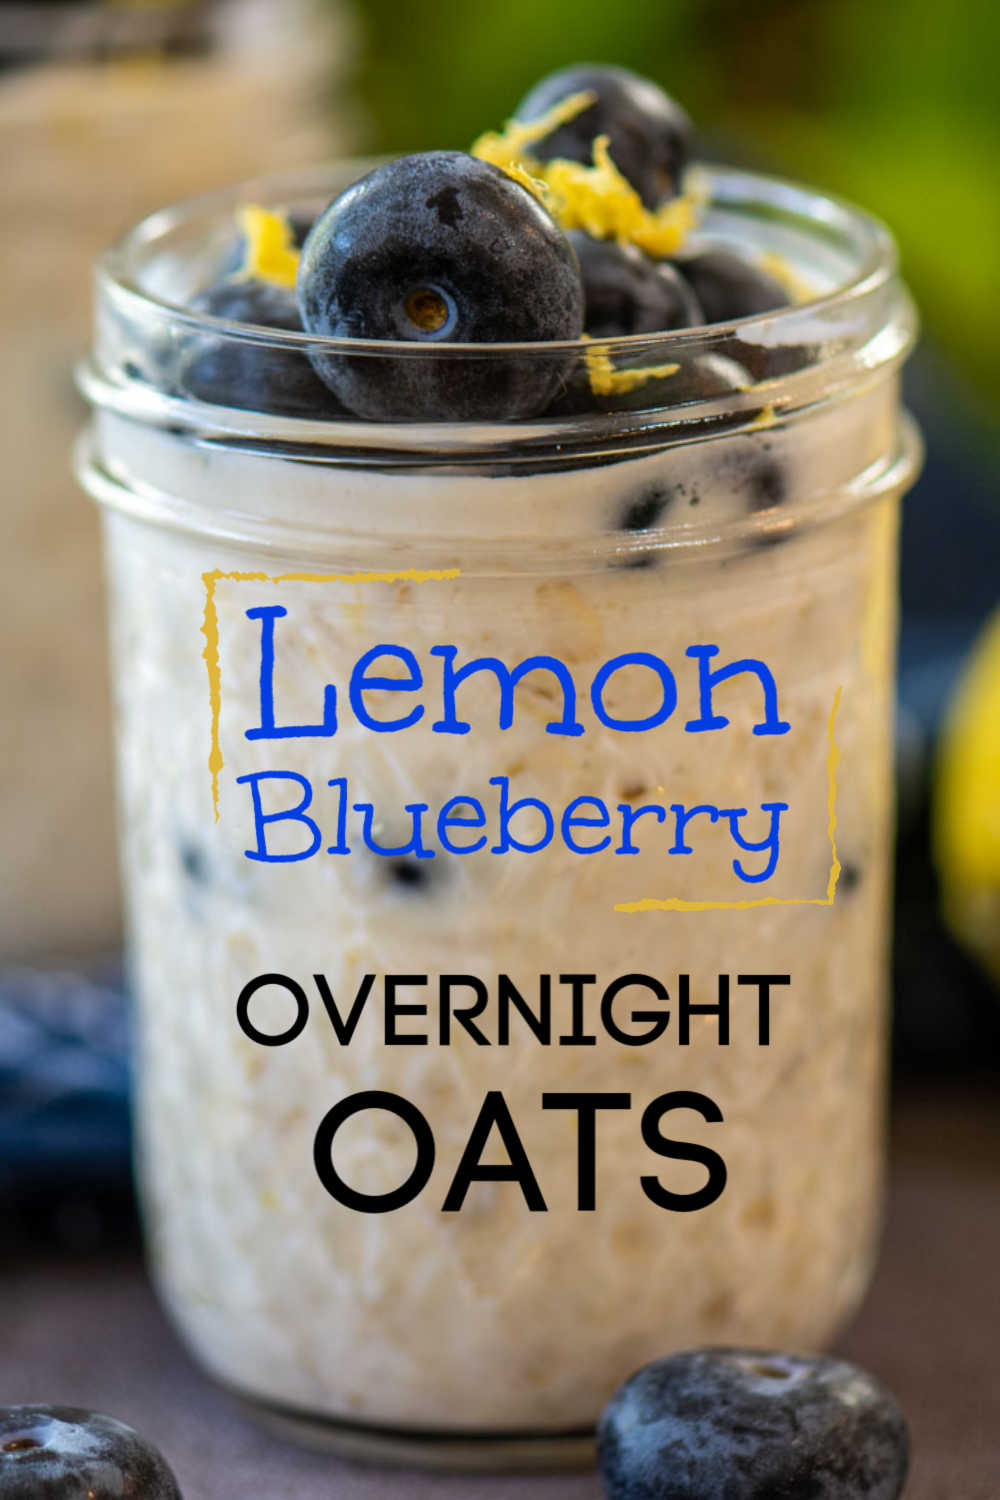 Lemon Blueberry Overnight Oats is an awesome meal prep breakfast. Taking less than five minutes to make, you will have several grab-and-go breakfasts ready for the week! #mealprep #breakfast #overnightoats